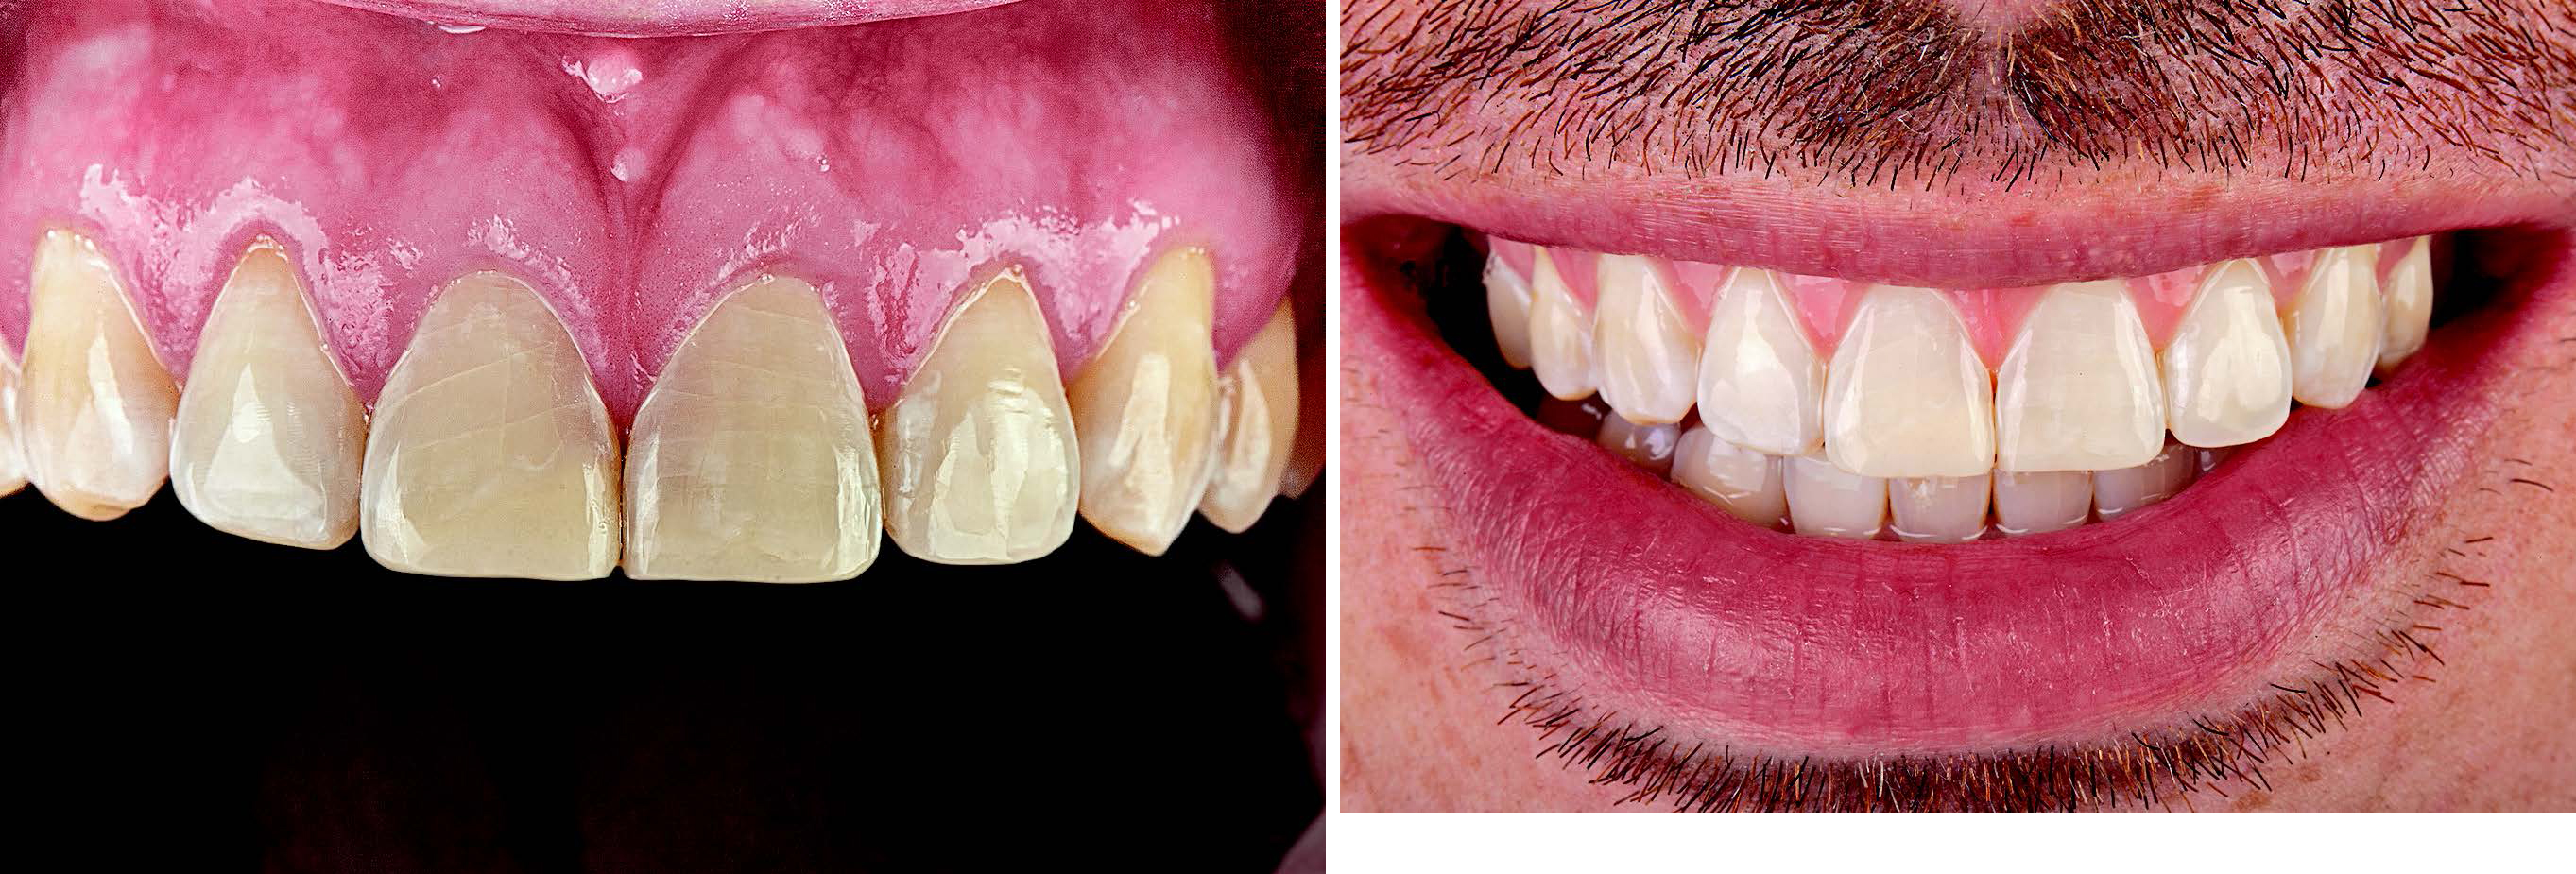 The completed resin composite restorations with optimal anatomical form and color integration. The composite restorations establish the optimal esthetic parameters for a natural smile.